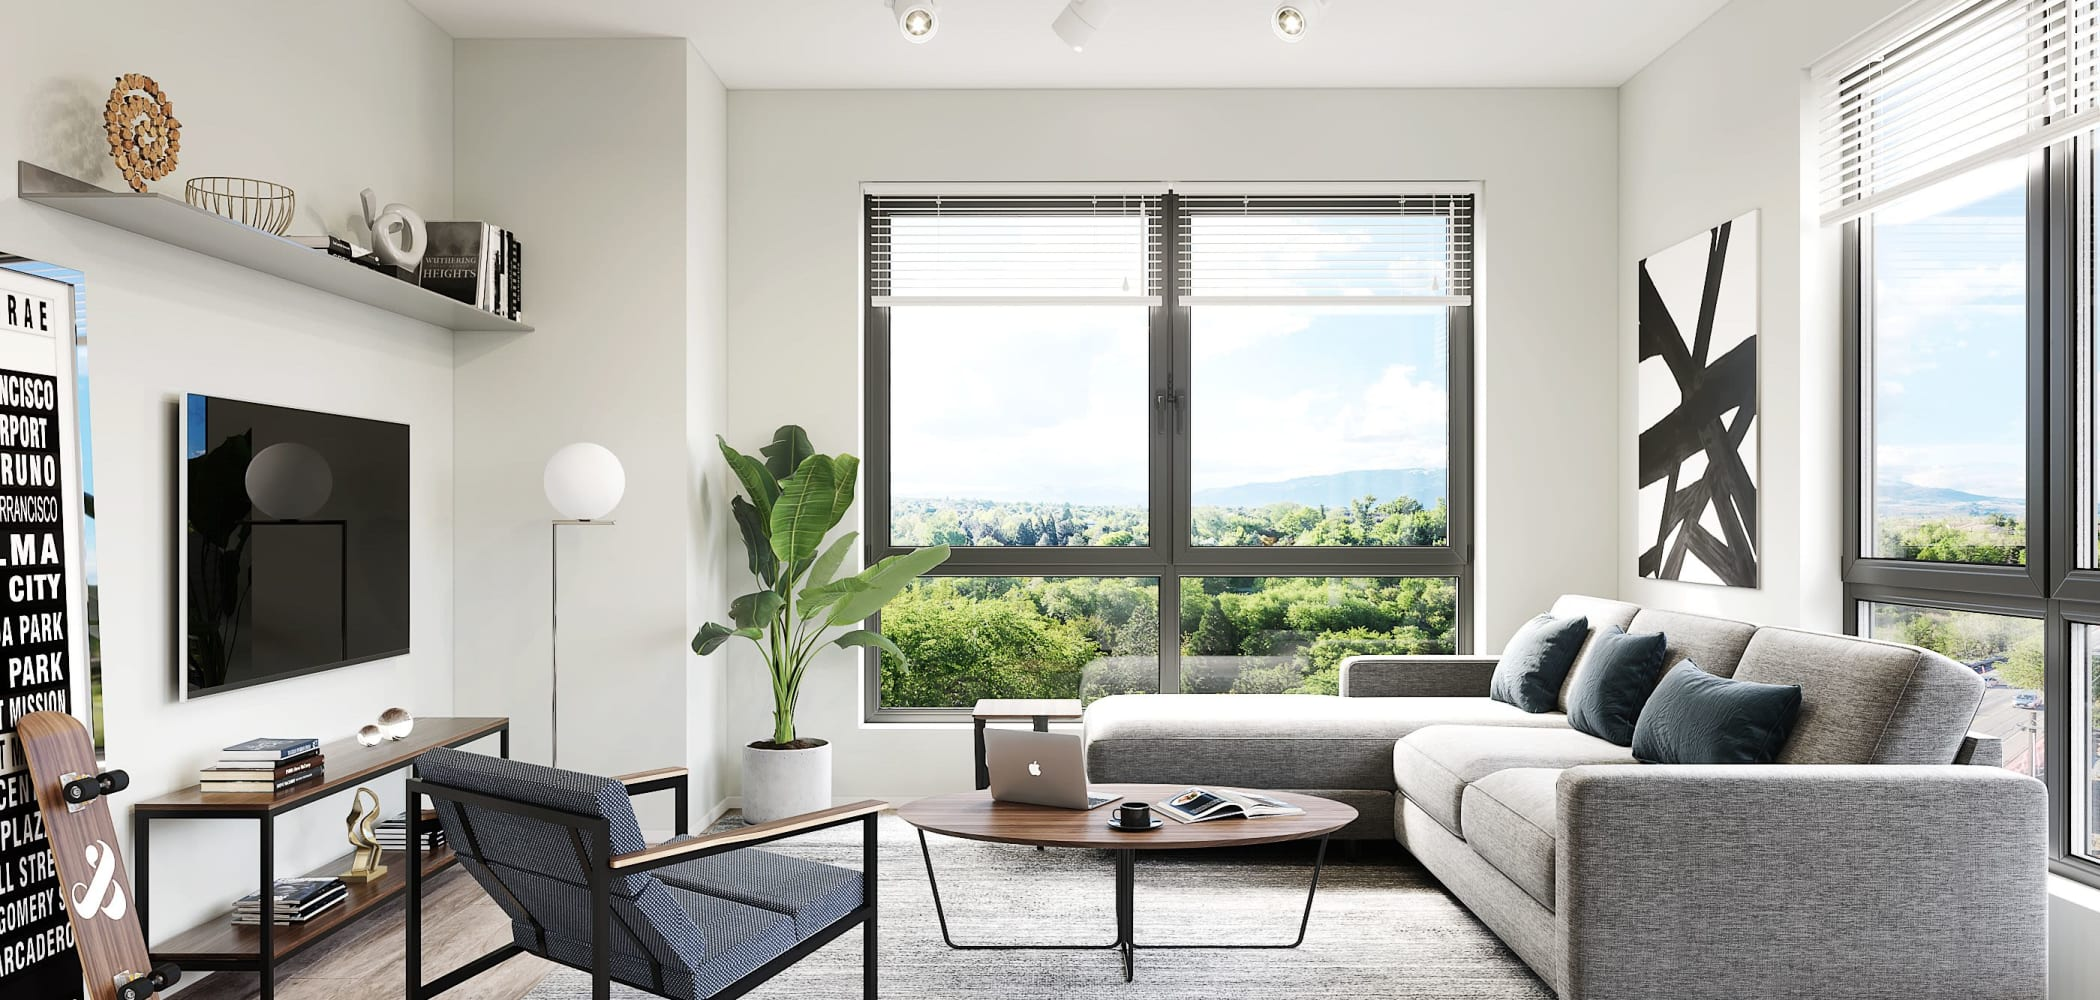 Bright living room with a great view at UNCOMMON Reno in Reno, Nevada